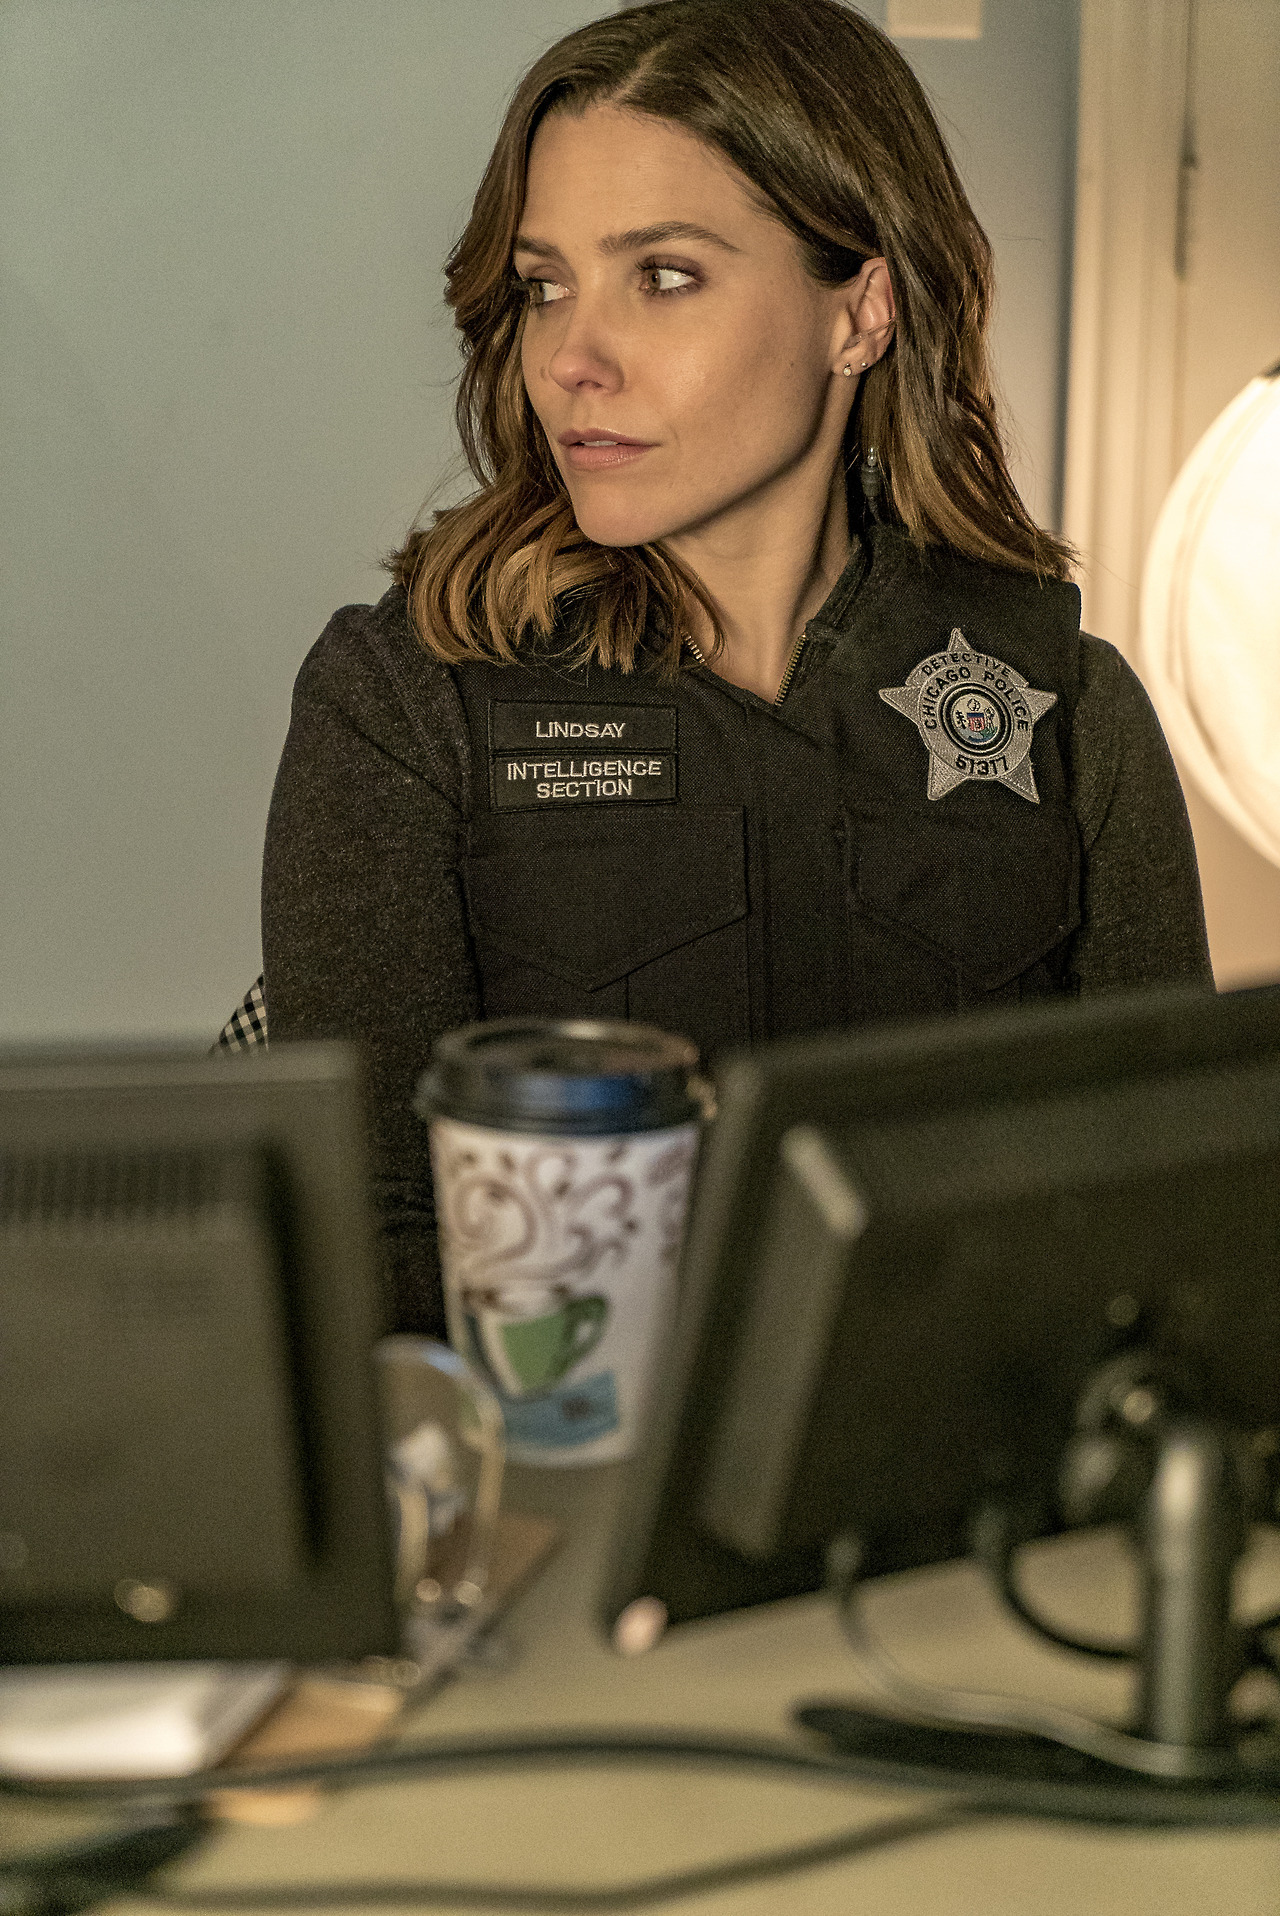 Side profile game is strong on the Chicago P.D. squad tomorrow.